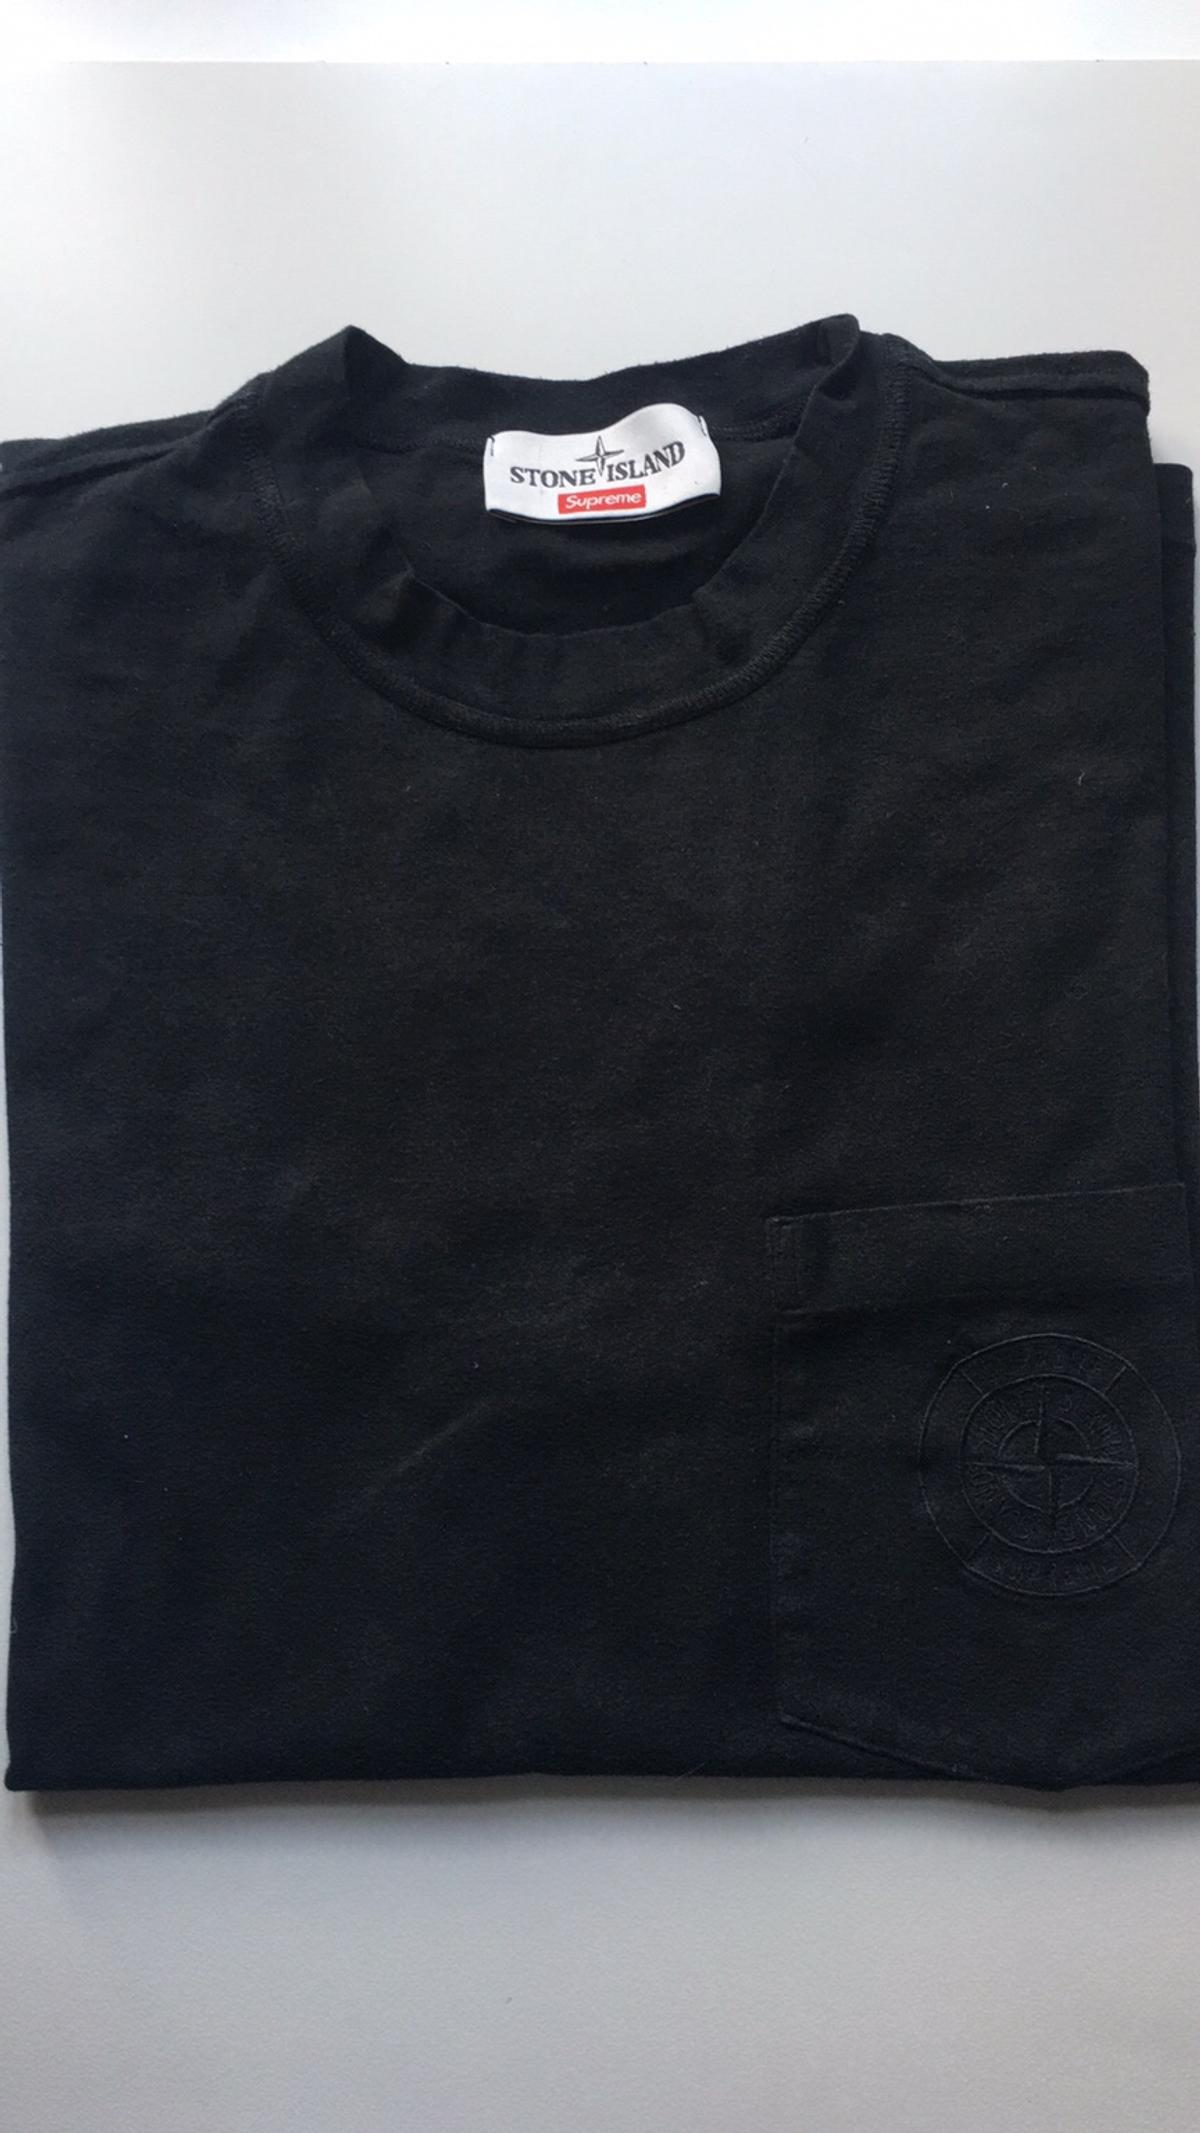 62aaf970 supreme x stone island black tee in 10122 Torino for €250.00 for ...